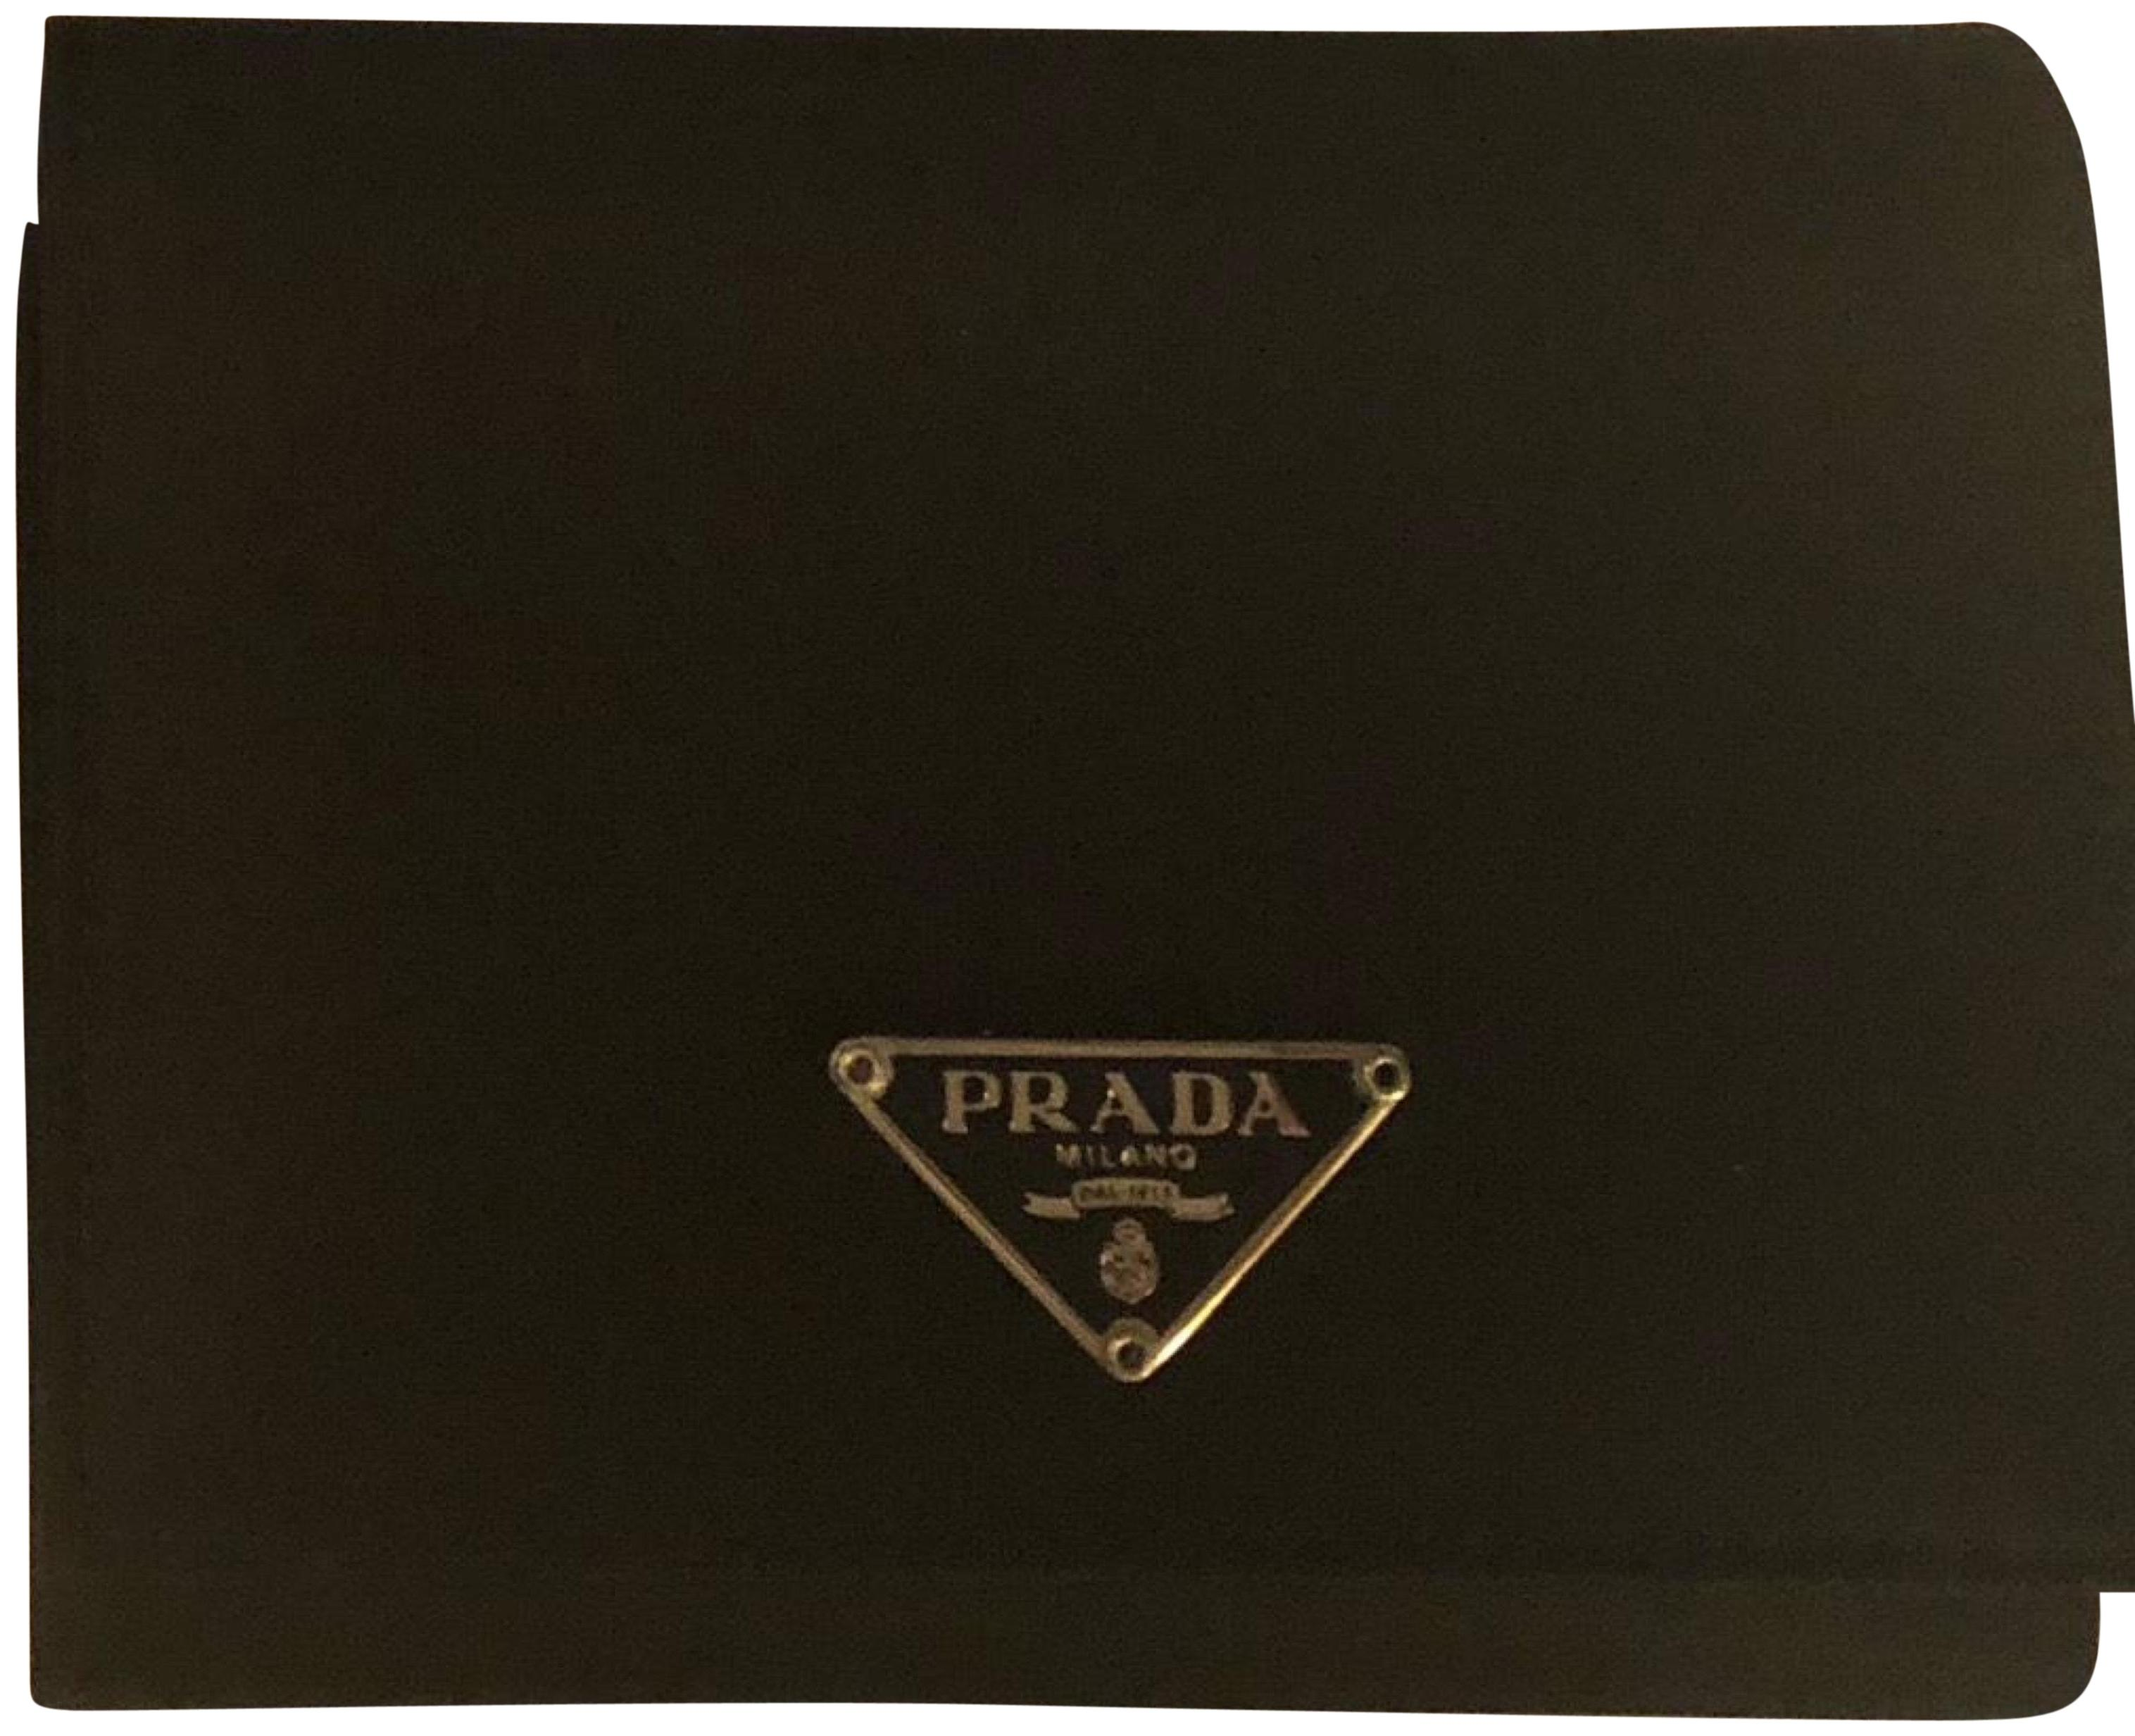 cdcb5b535218 ... wholesale prada wallets on sale up to 70 off at tradesy eea76 3264a